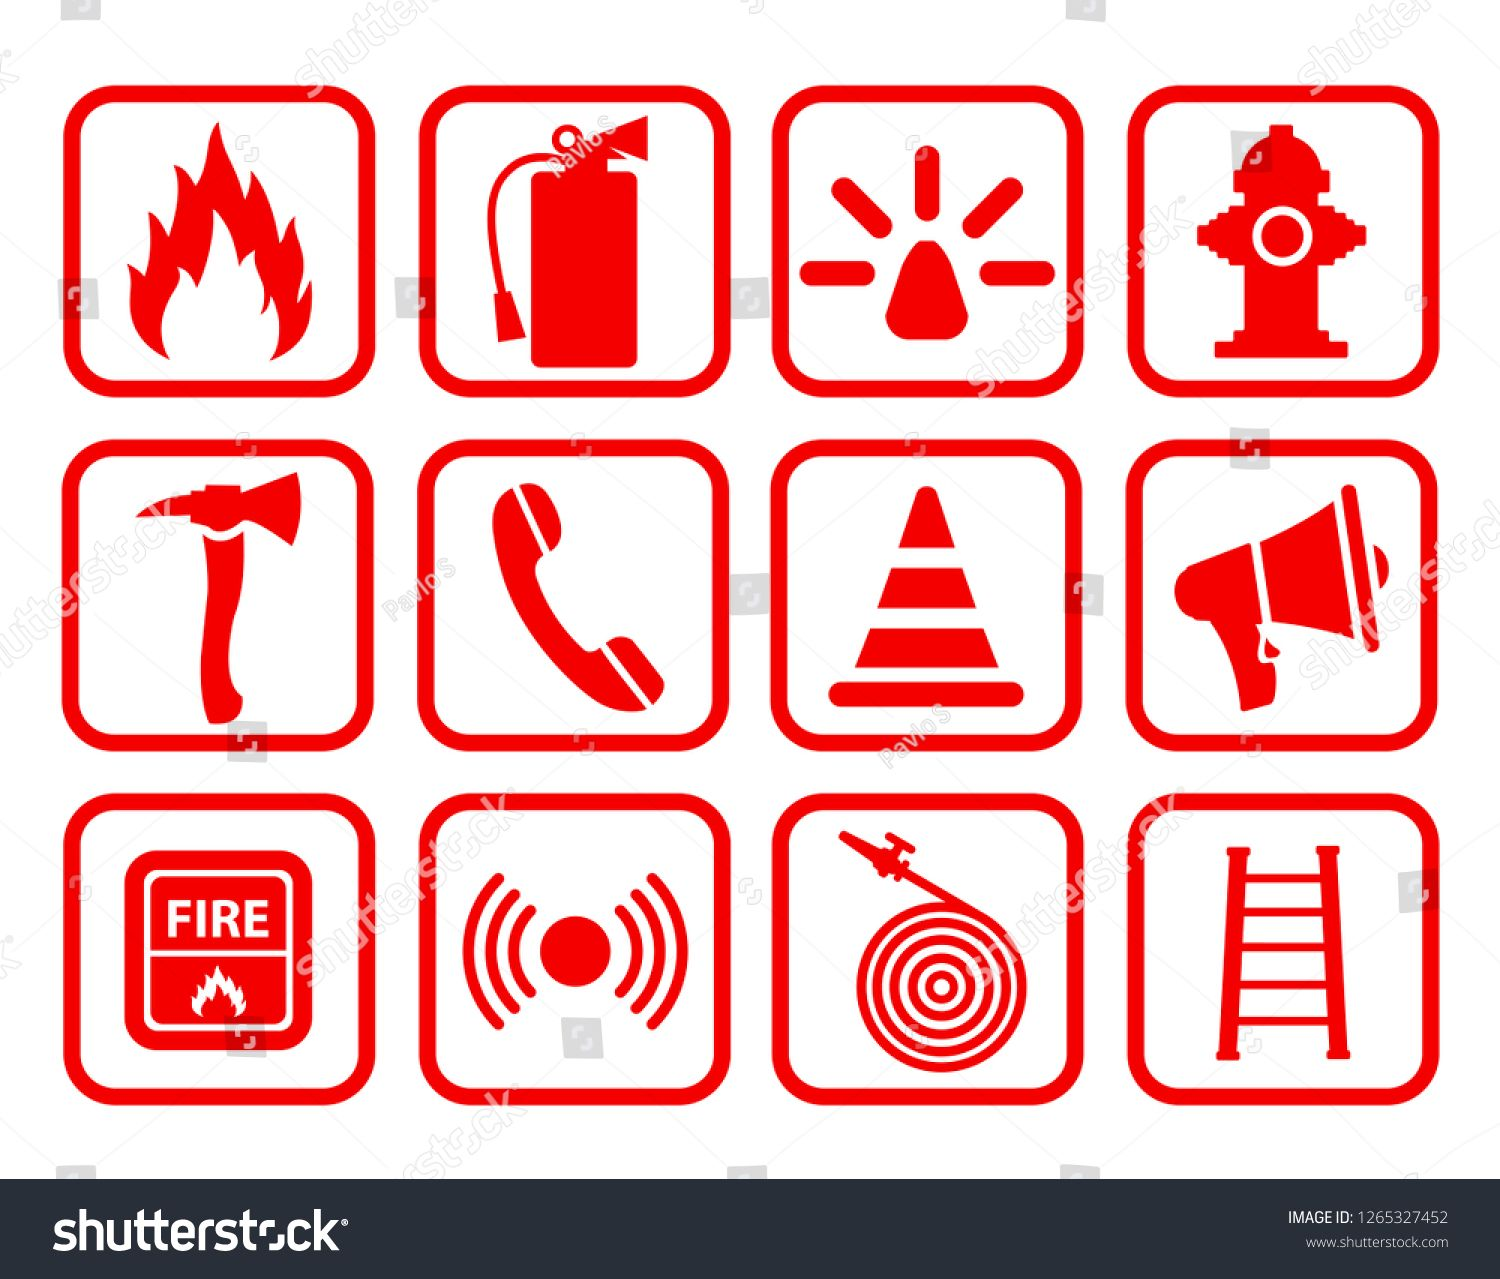 Fire extinguisher icon. Flat fire safety for stock